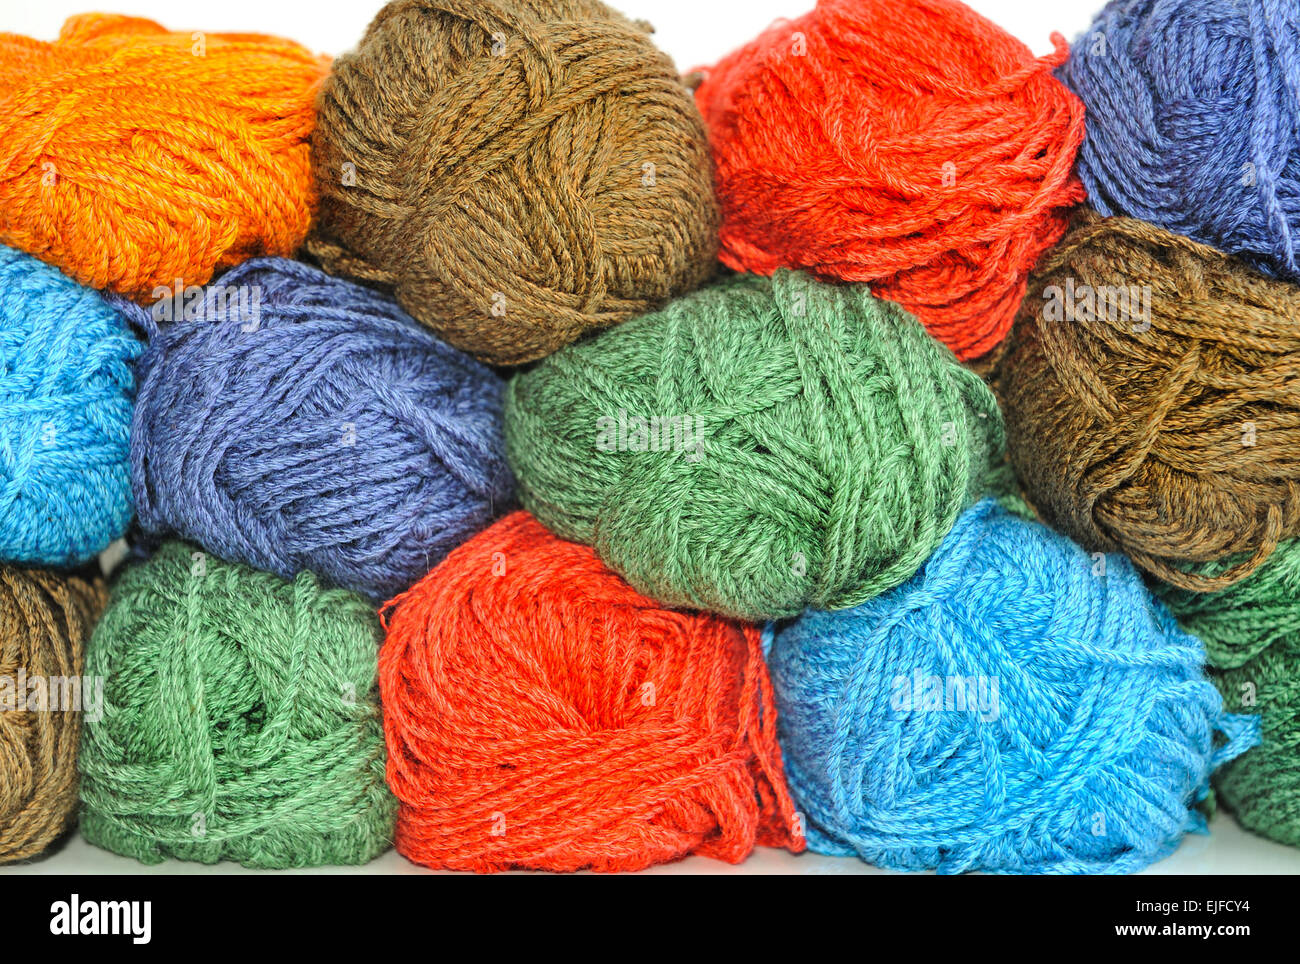 Multi-colored skeins of yarn for knitting. - Stock Image